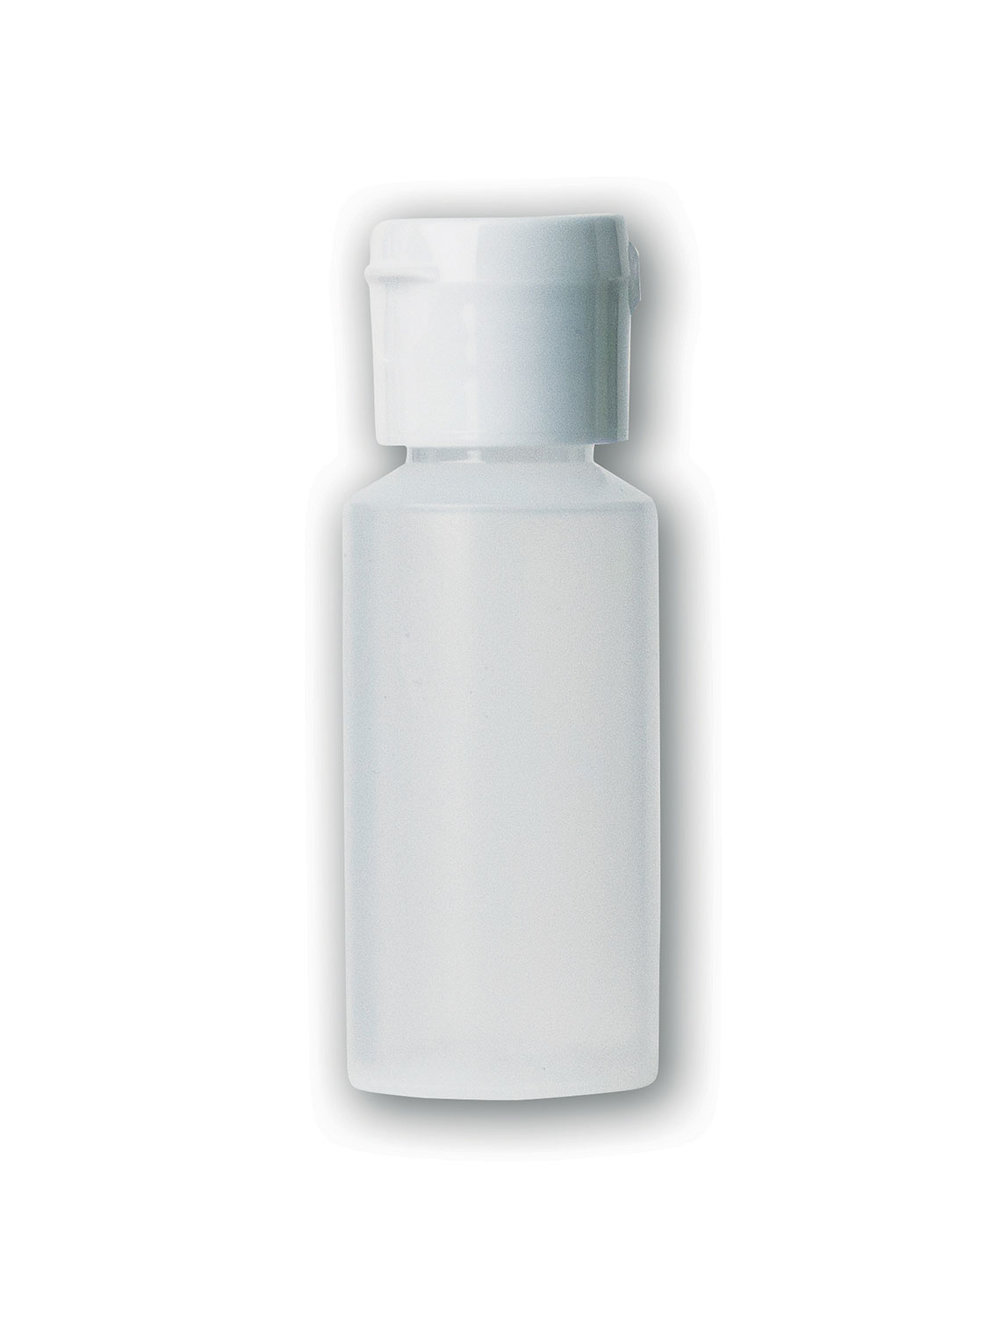 1 oz Translucent Squeezable Bottle#(plastic w/flip cap)#Item ACC2121